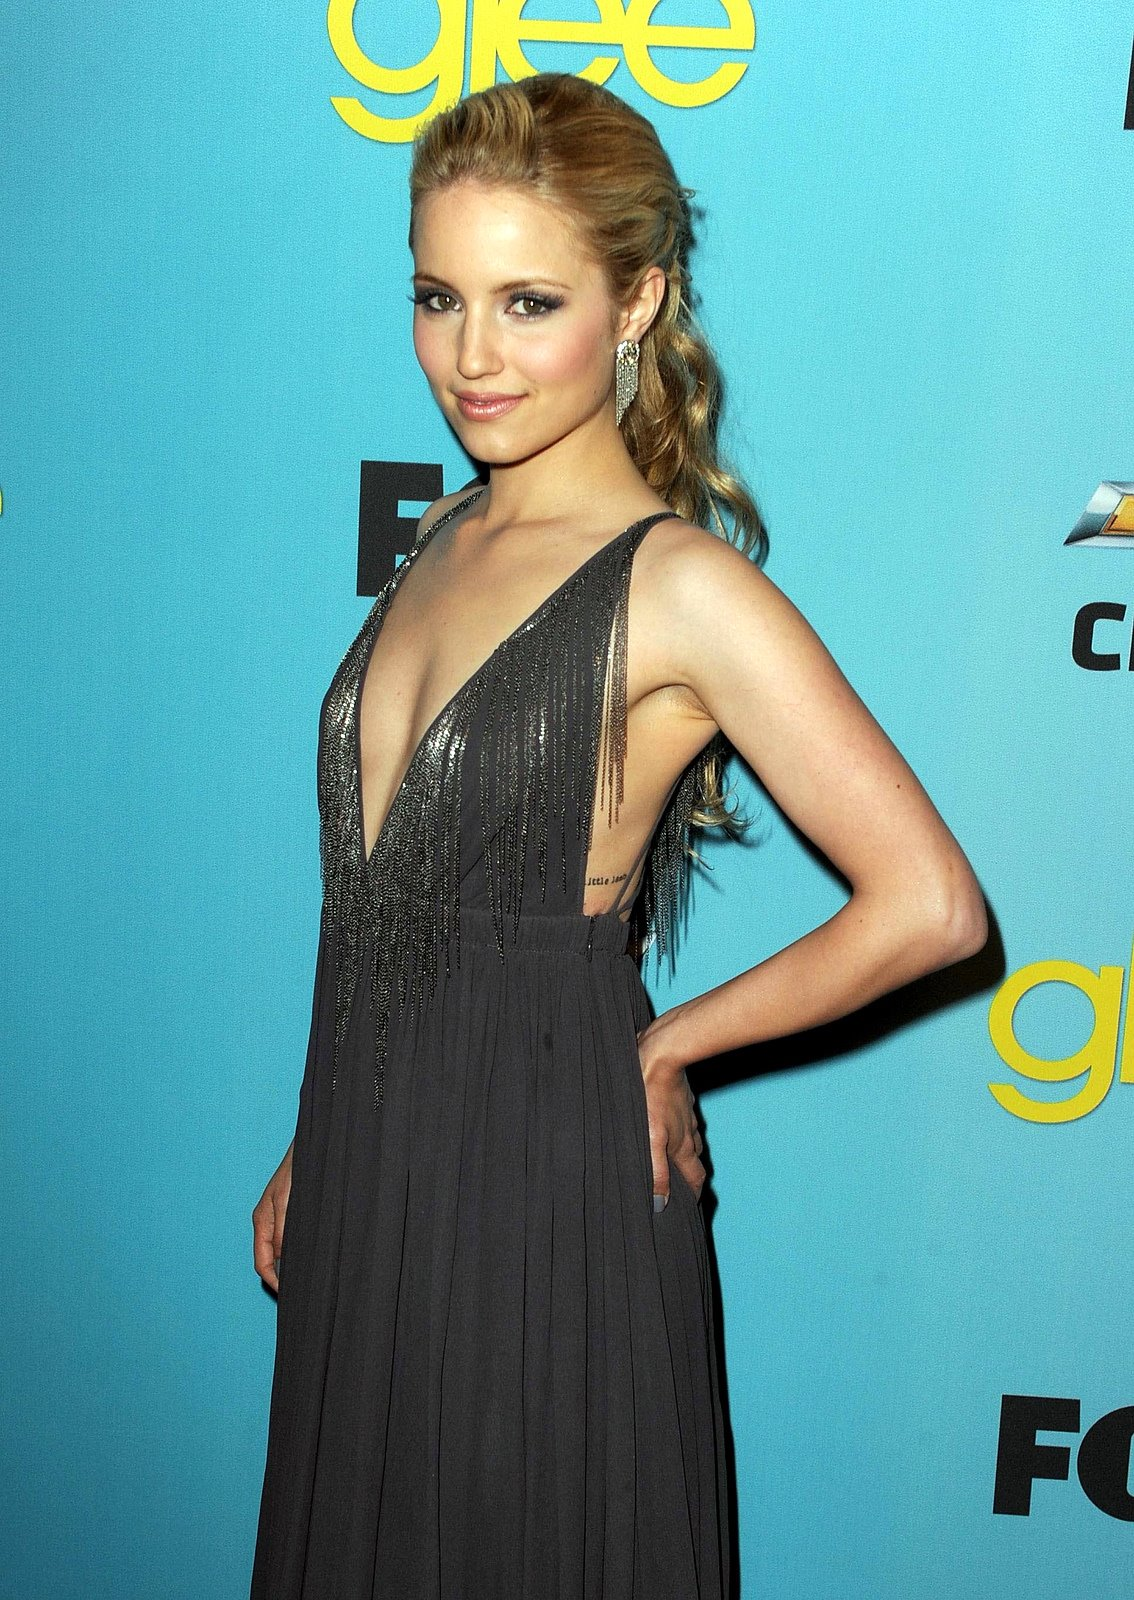 Download this Dianna Agron Exceptionally Hot picture